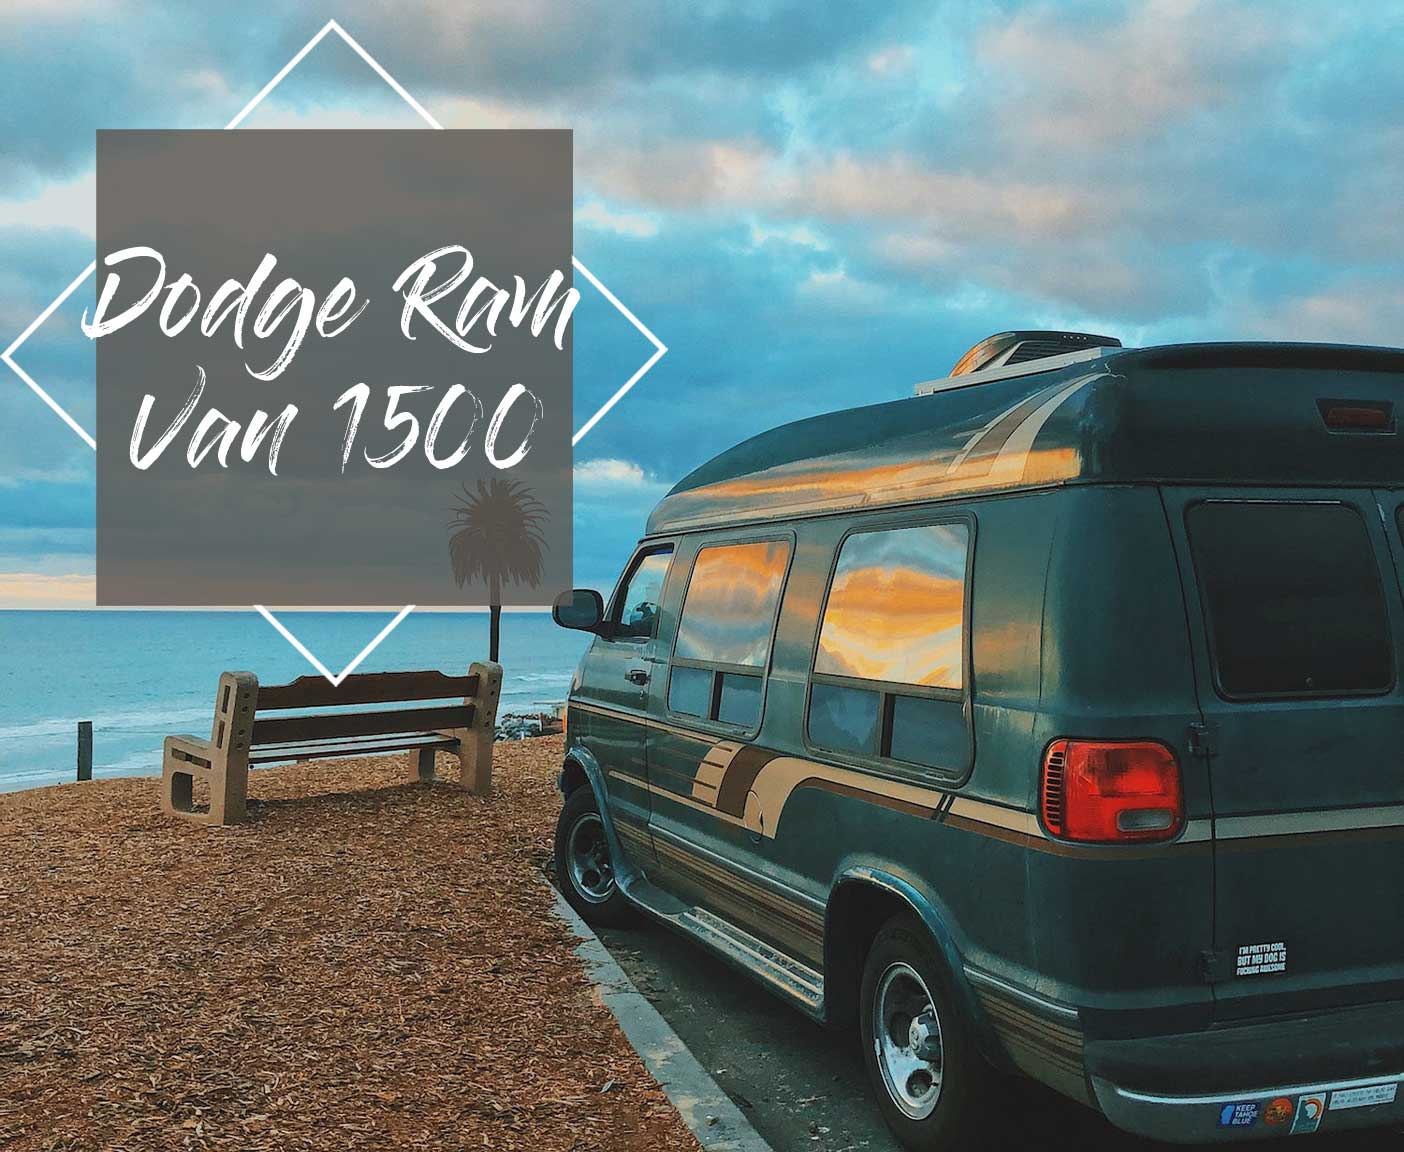 Dodge Ram Van 1500 The American Way Of Van Life